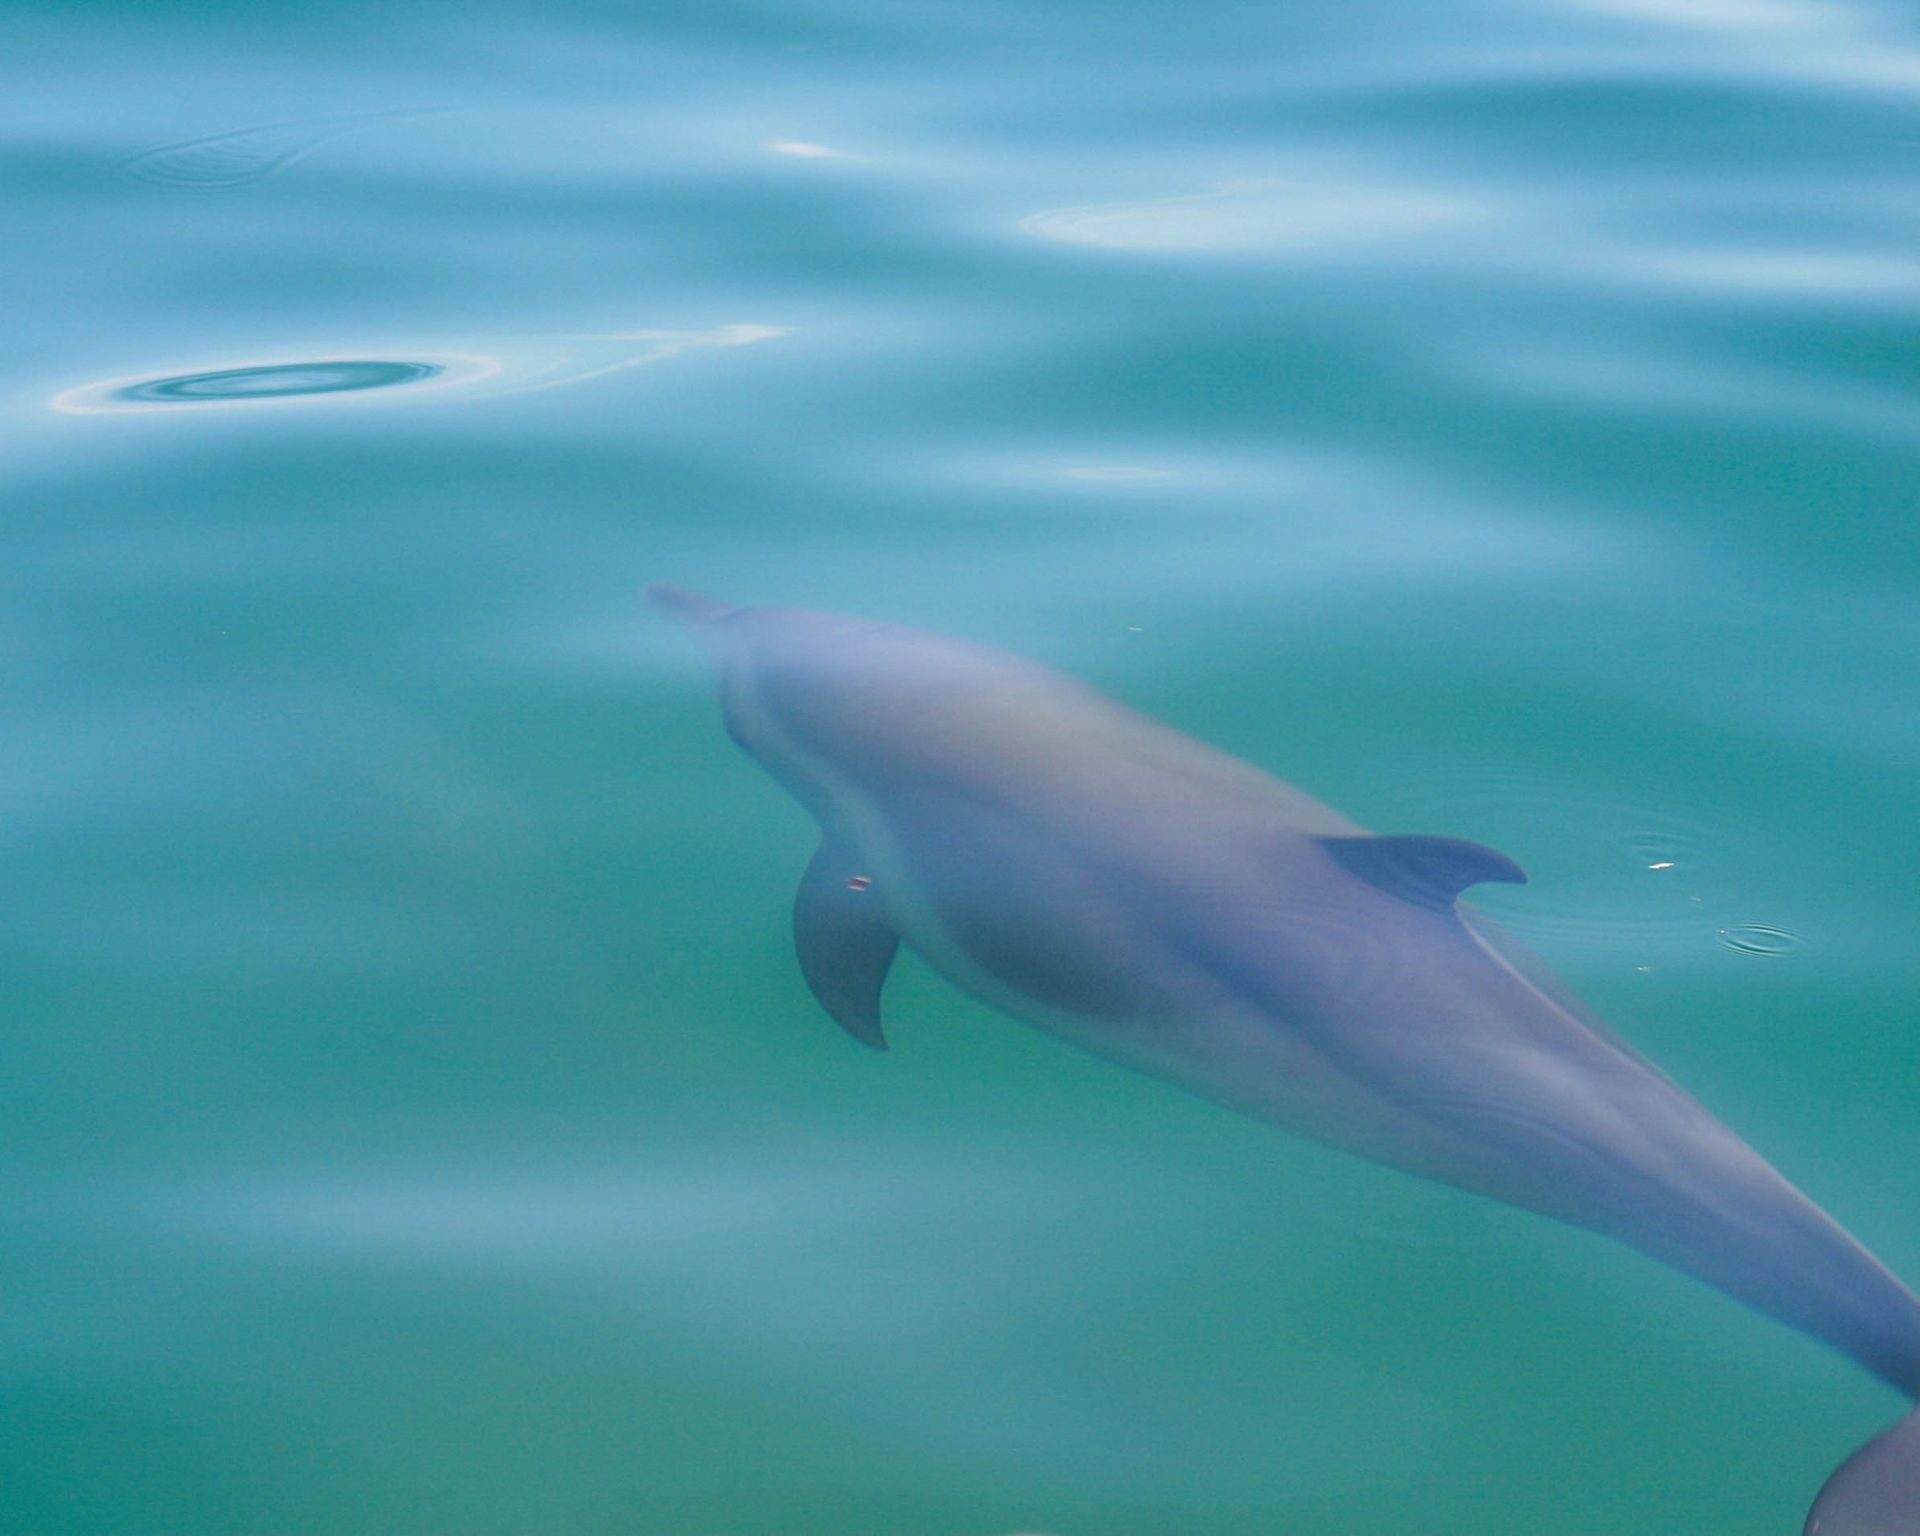 A dolphin swims just under the waves in Costa Rica - finding paradise in the osa peninsula